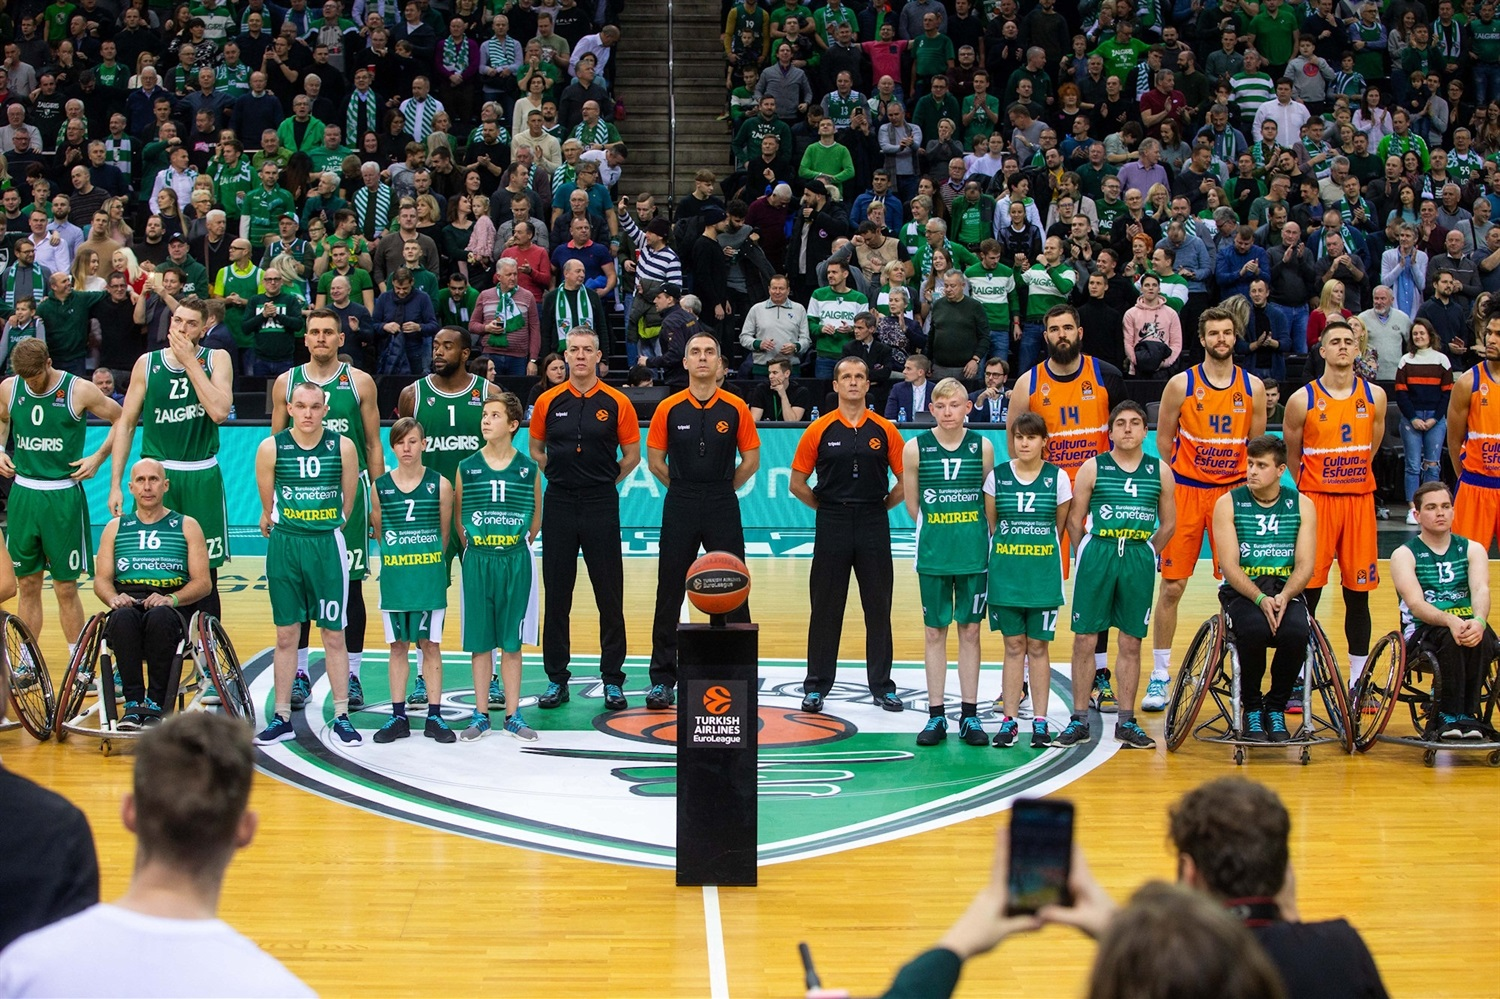 One Team Games - Zalgiris Kaunas vs. Valencia Basket - EB19